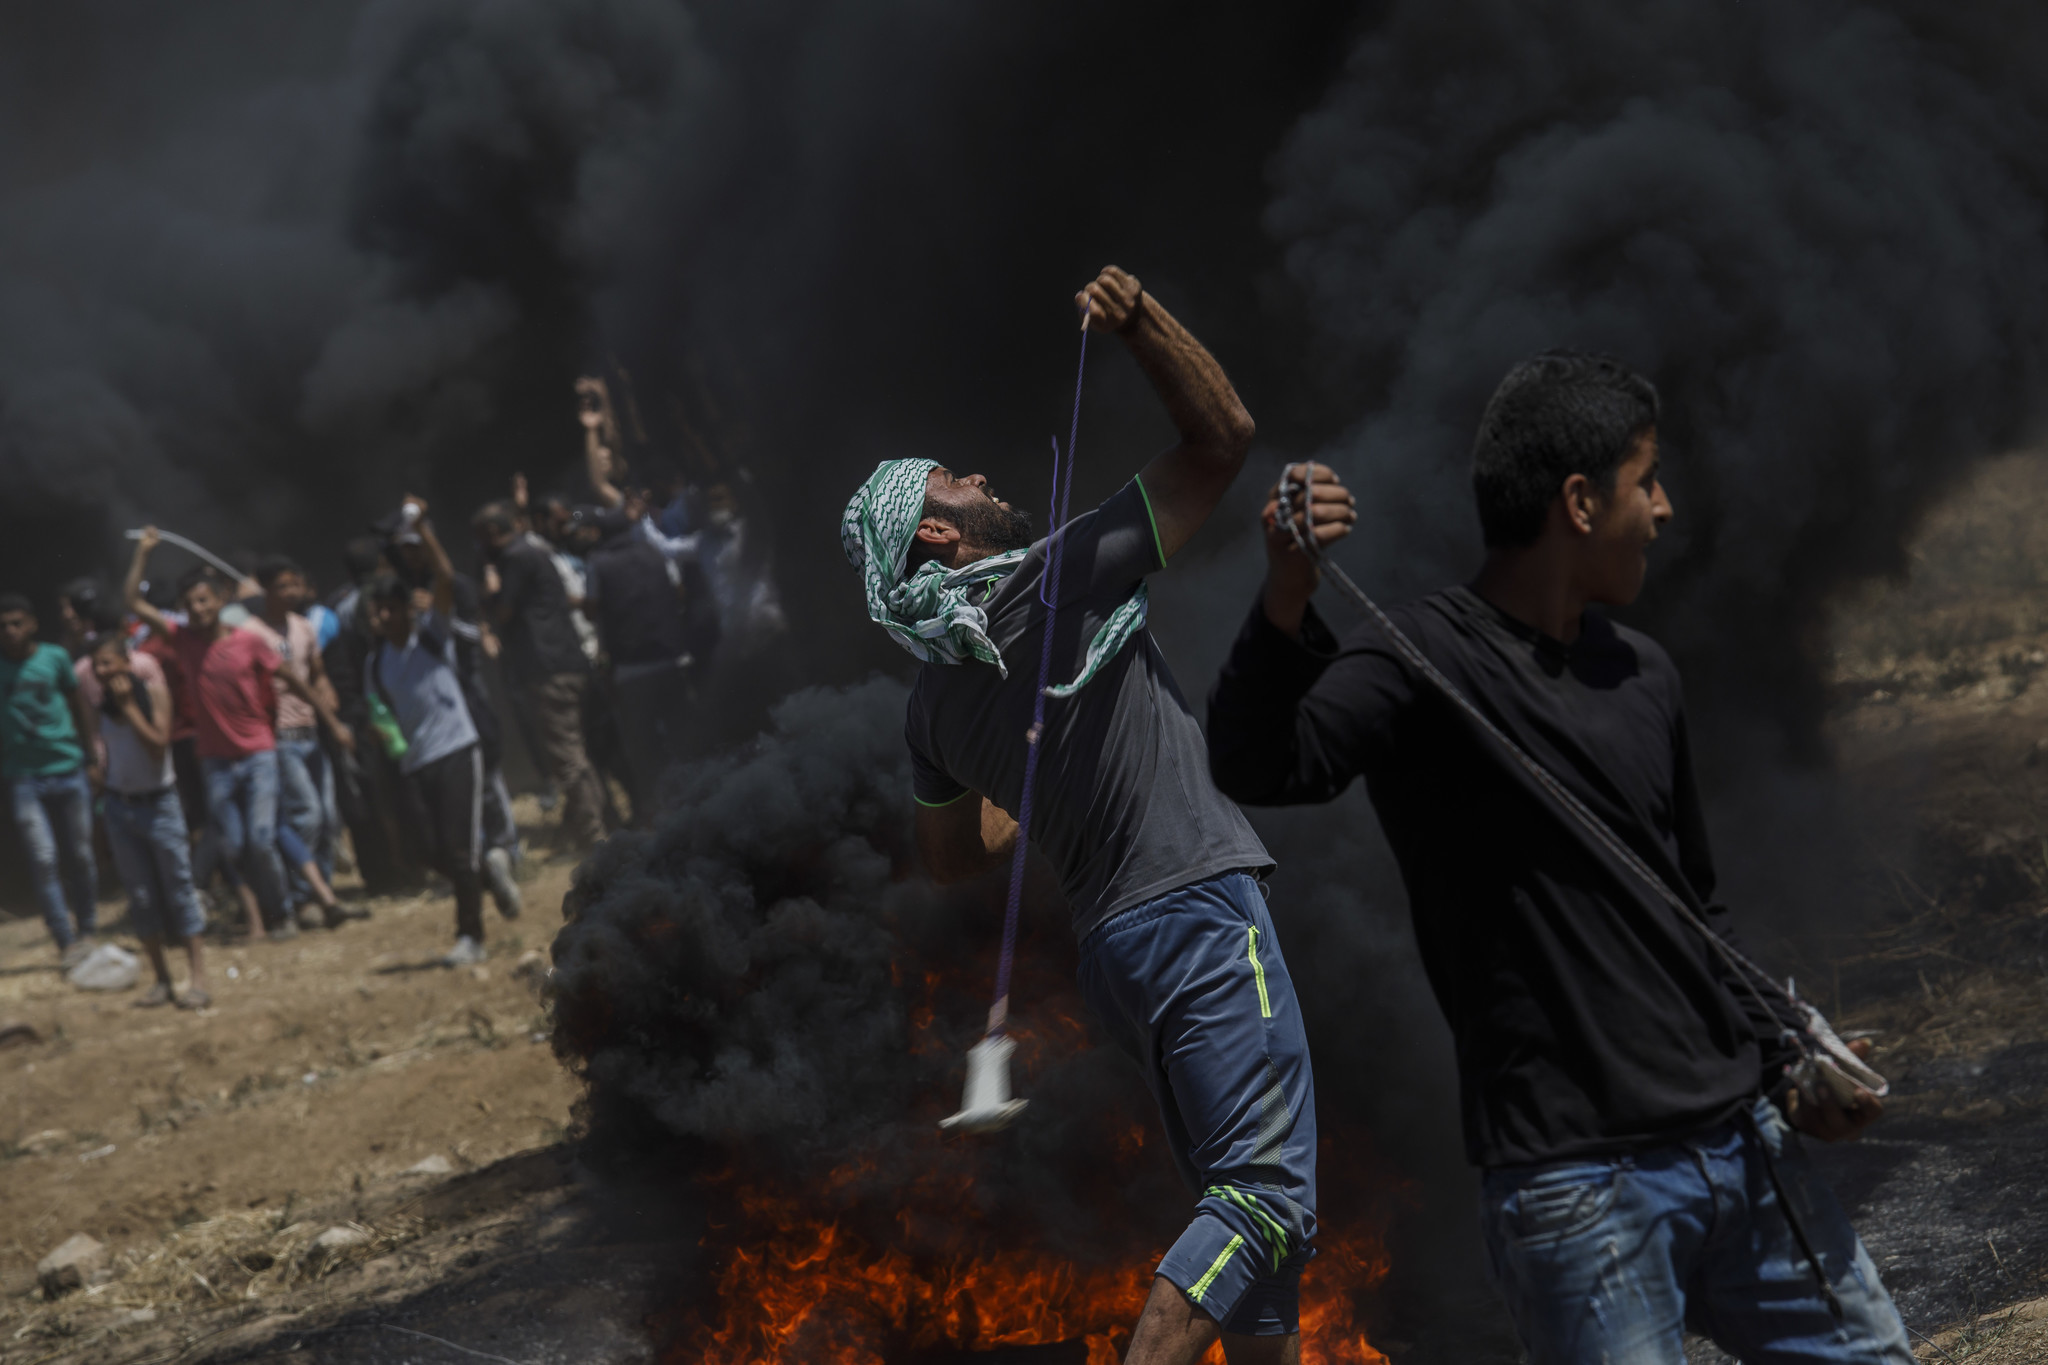 GAZA CITY, GAZA — MONDAY, MAY 14, 2018: Protesters fling projectile at the border fence separating